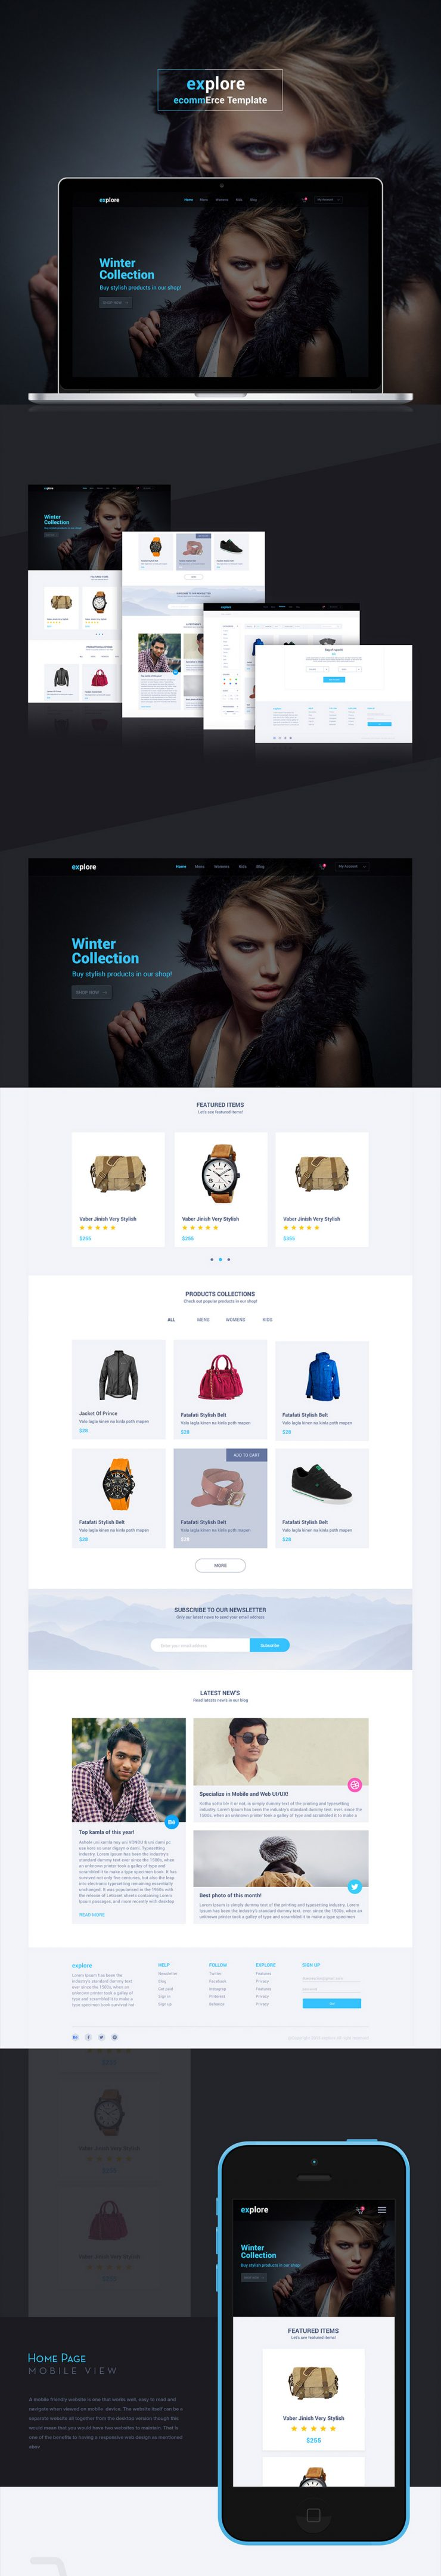 Simple eCommerce Website Templates Free PSD Set